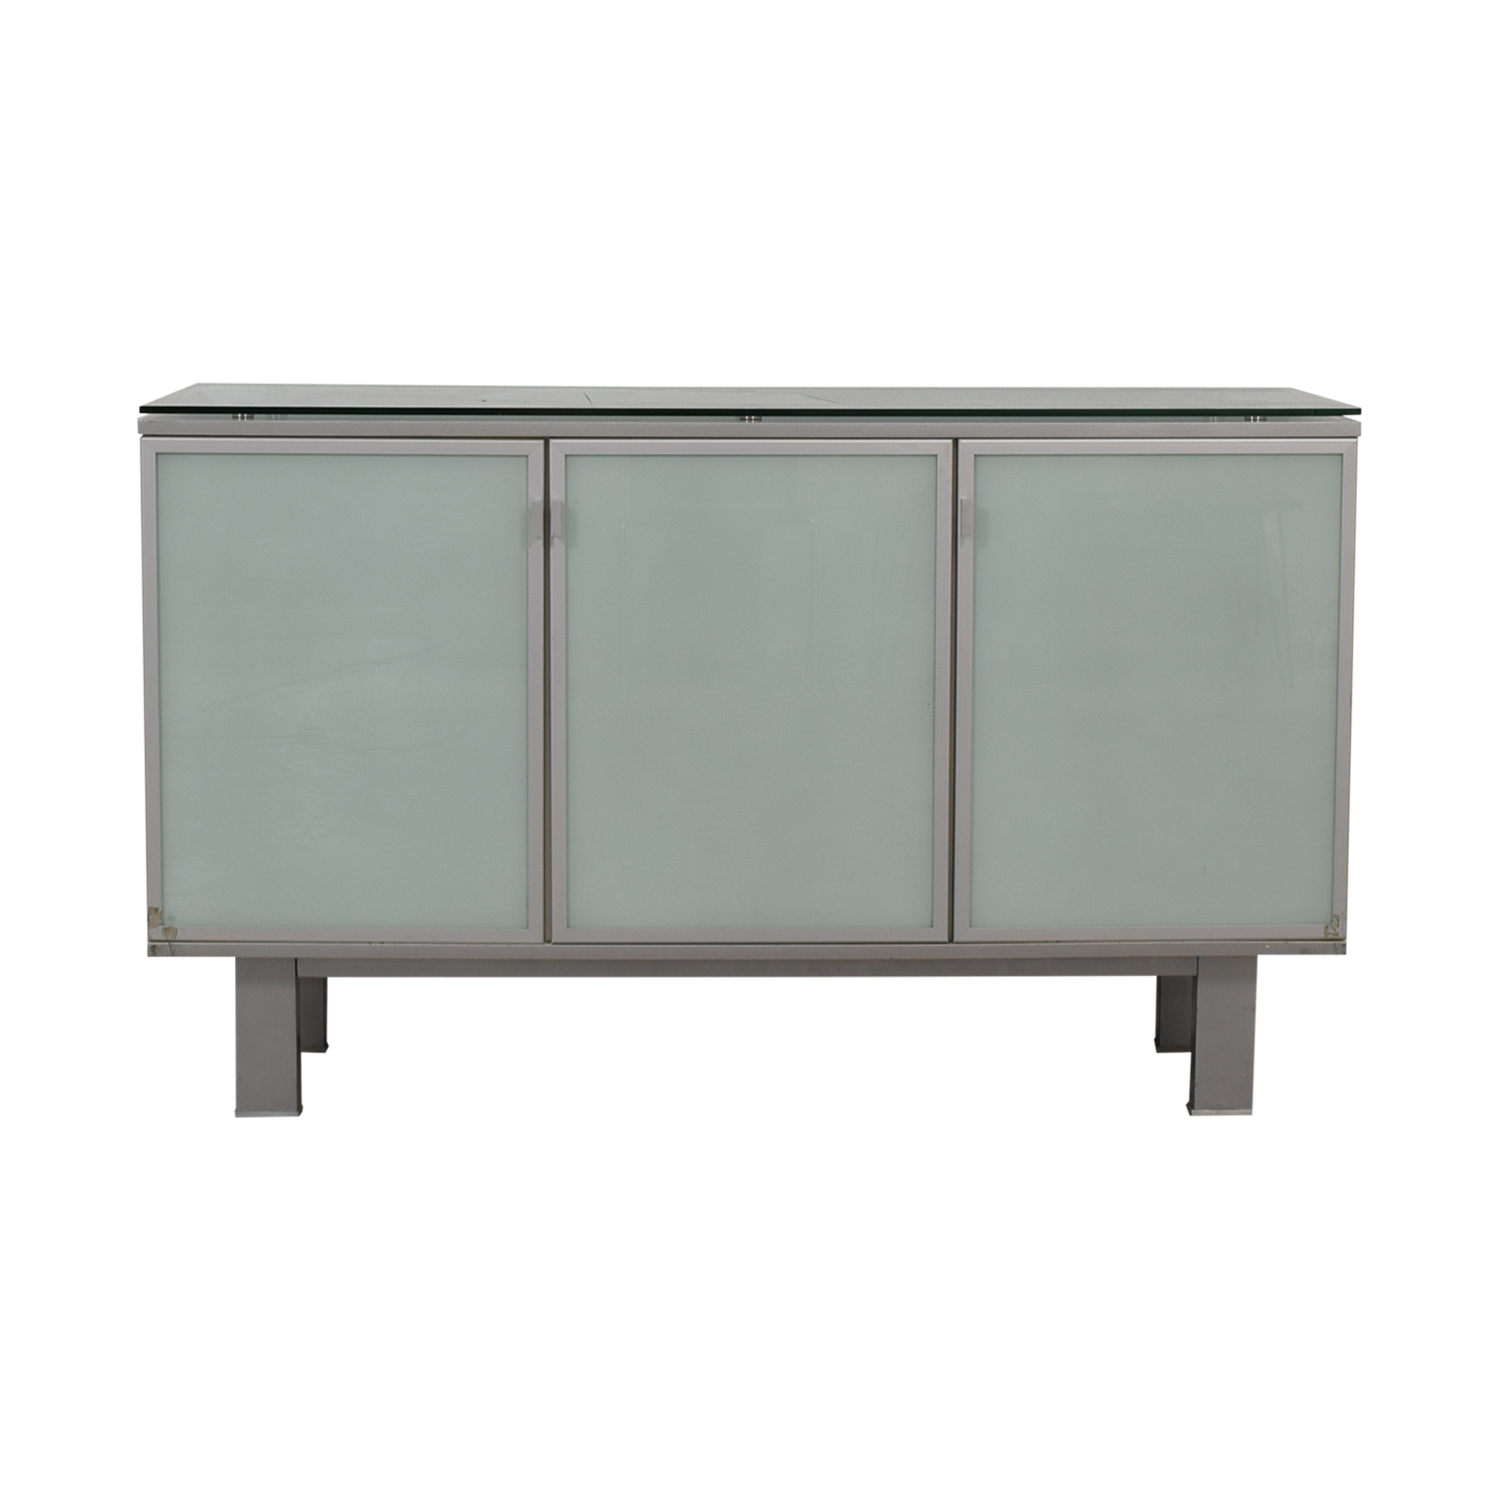 Green Glass Credenza for sale